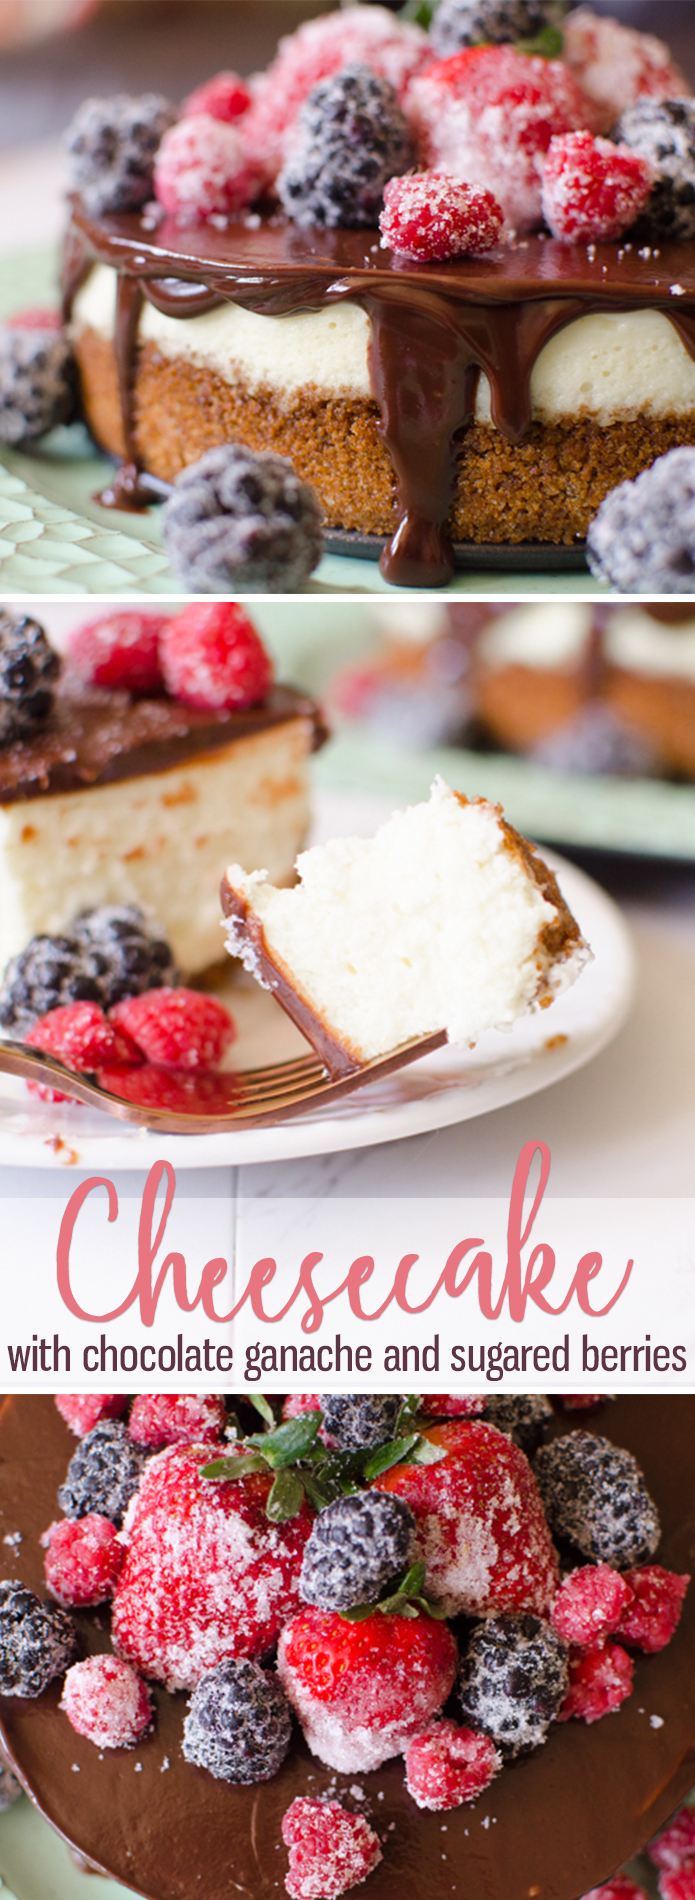 Cheesecake with Berries & Chocolate Ganache is a creamy, homemade, six-inch cheesecake topped with a rich chocolate ganache. The Cheesecake is garnished with sugared berries that give this classic dessert a bright, fresh flavor. #Cheesecake with #Berries and #Ganache from Butter With A Side of Bread #dessert #homemade #howtomakecheesecake #food #recipe